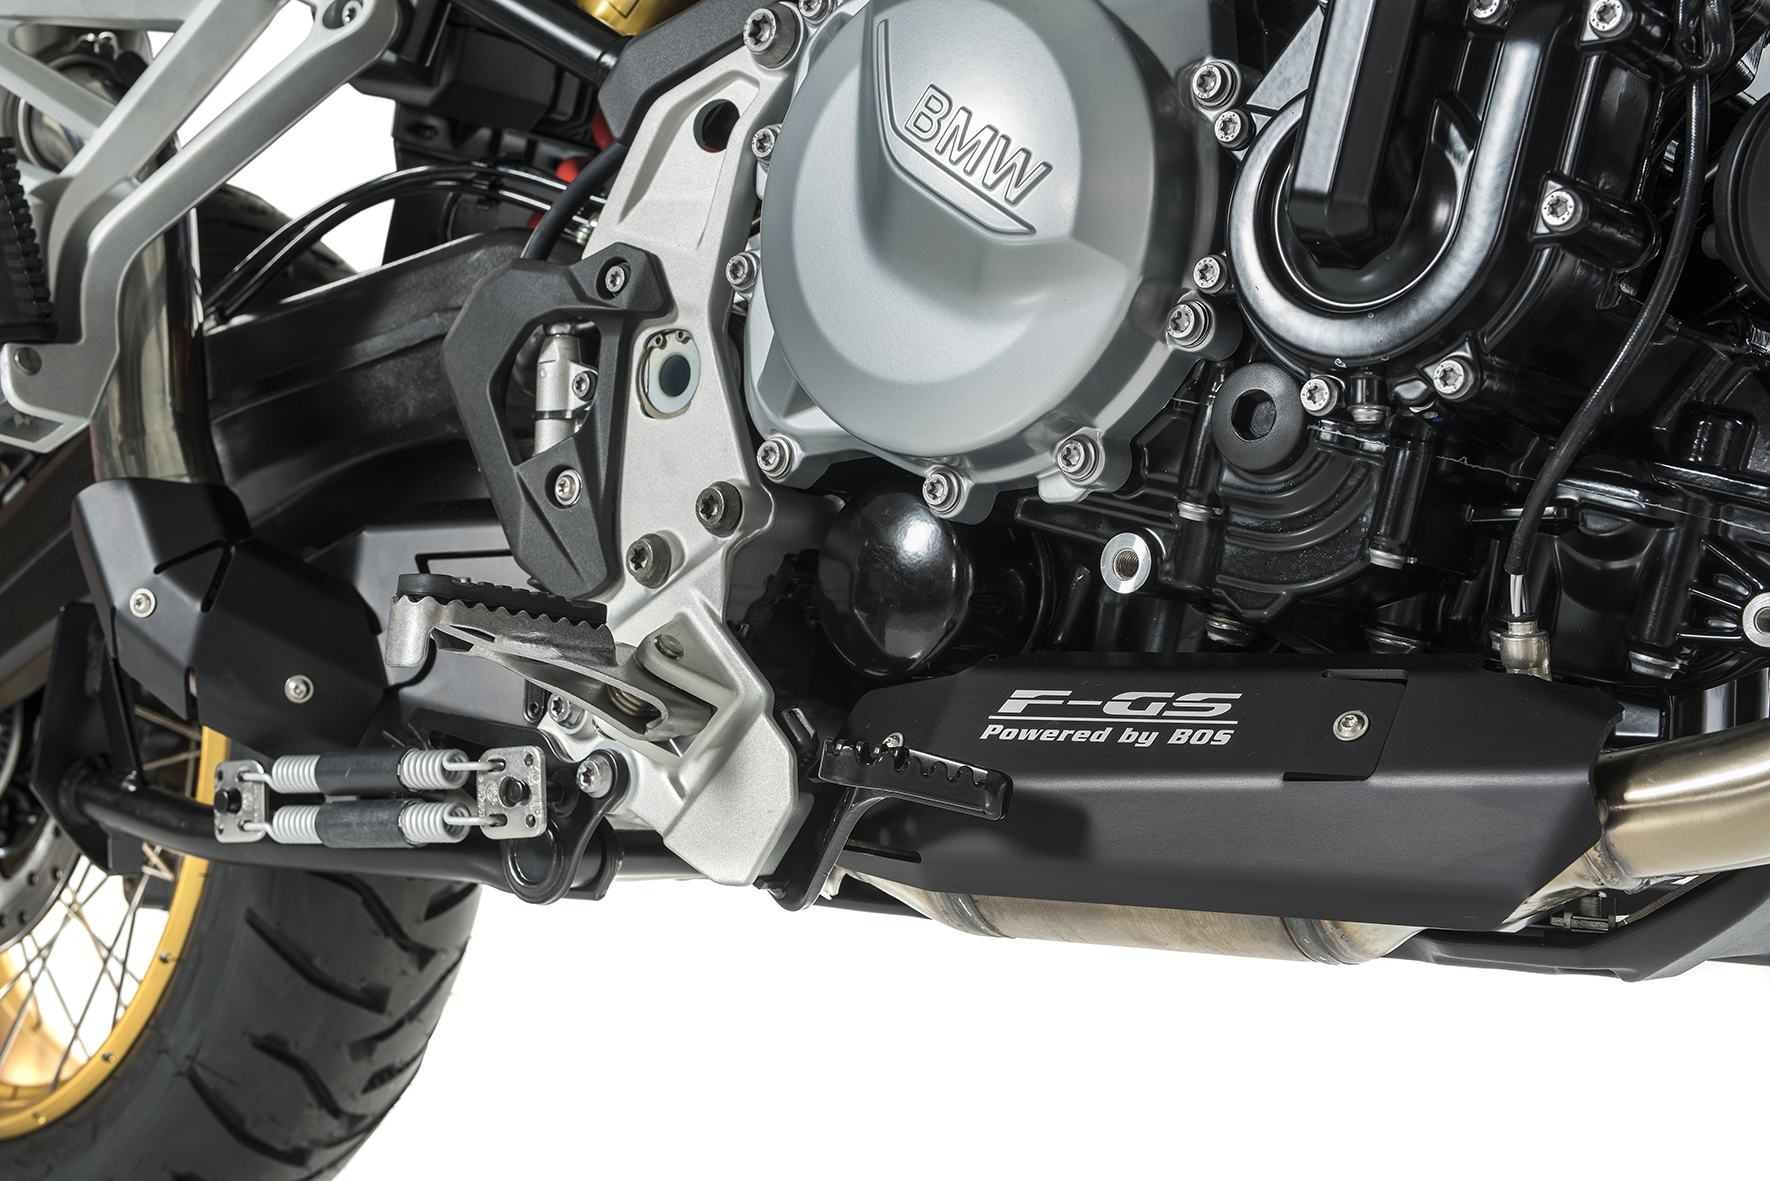 F 750 GS / F 850 GS Dune Fox Slip-on Euro 4 5